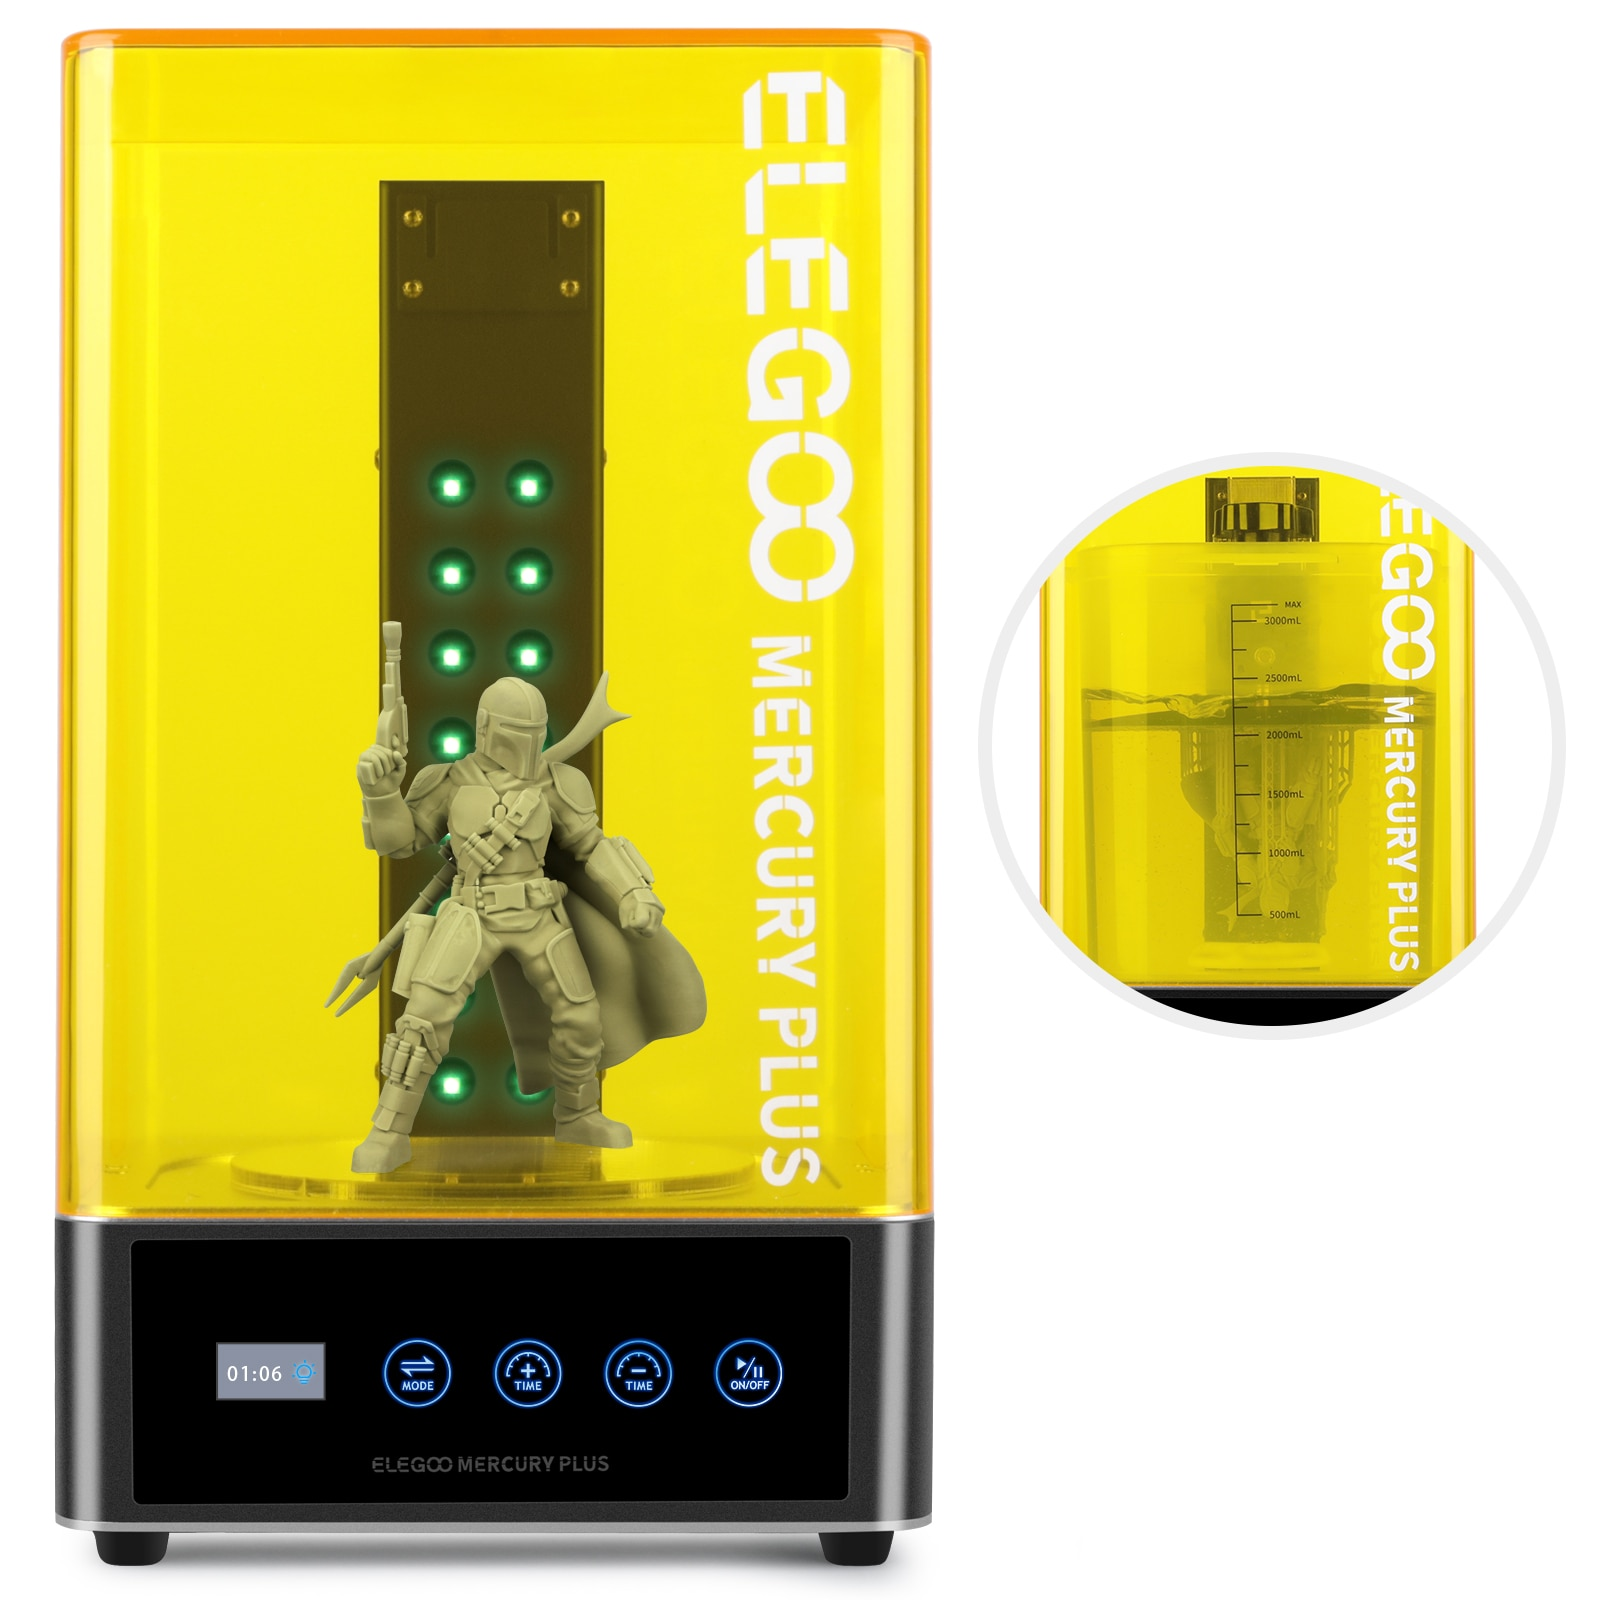 ELEGOO 3D Printer Wash And Cure Machine for Curing Models 2-in-1 Washing and Curing Cure models with Sealed Washing Container